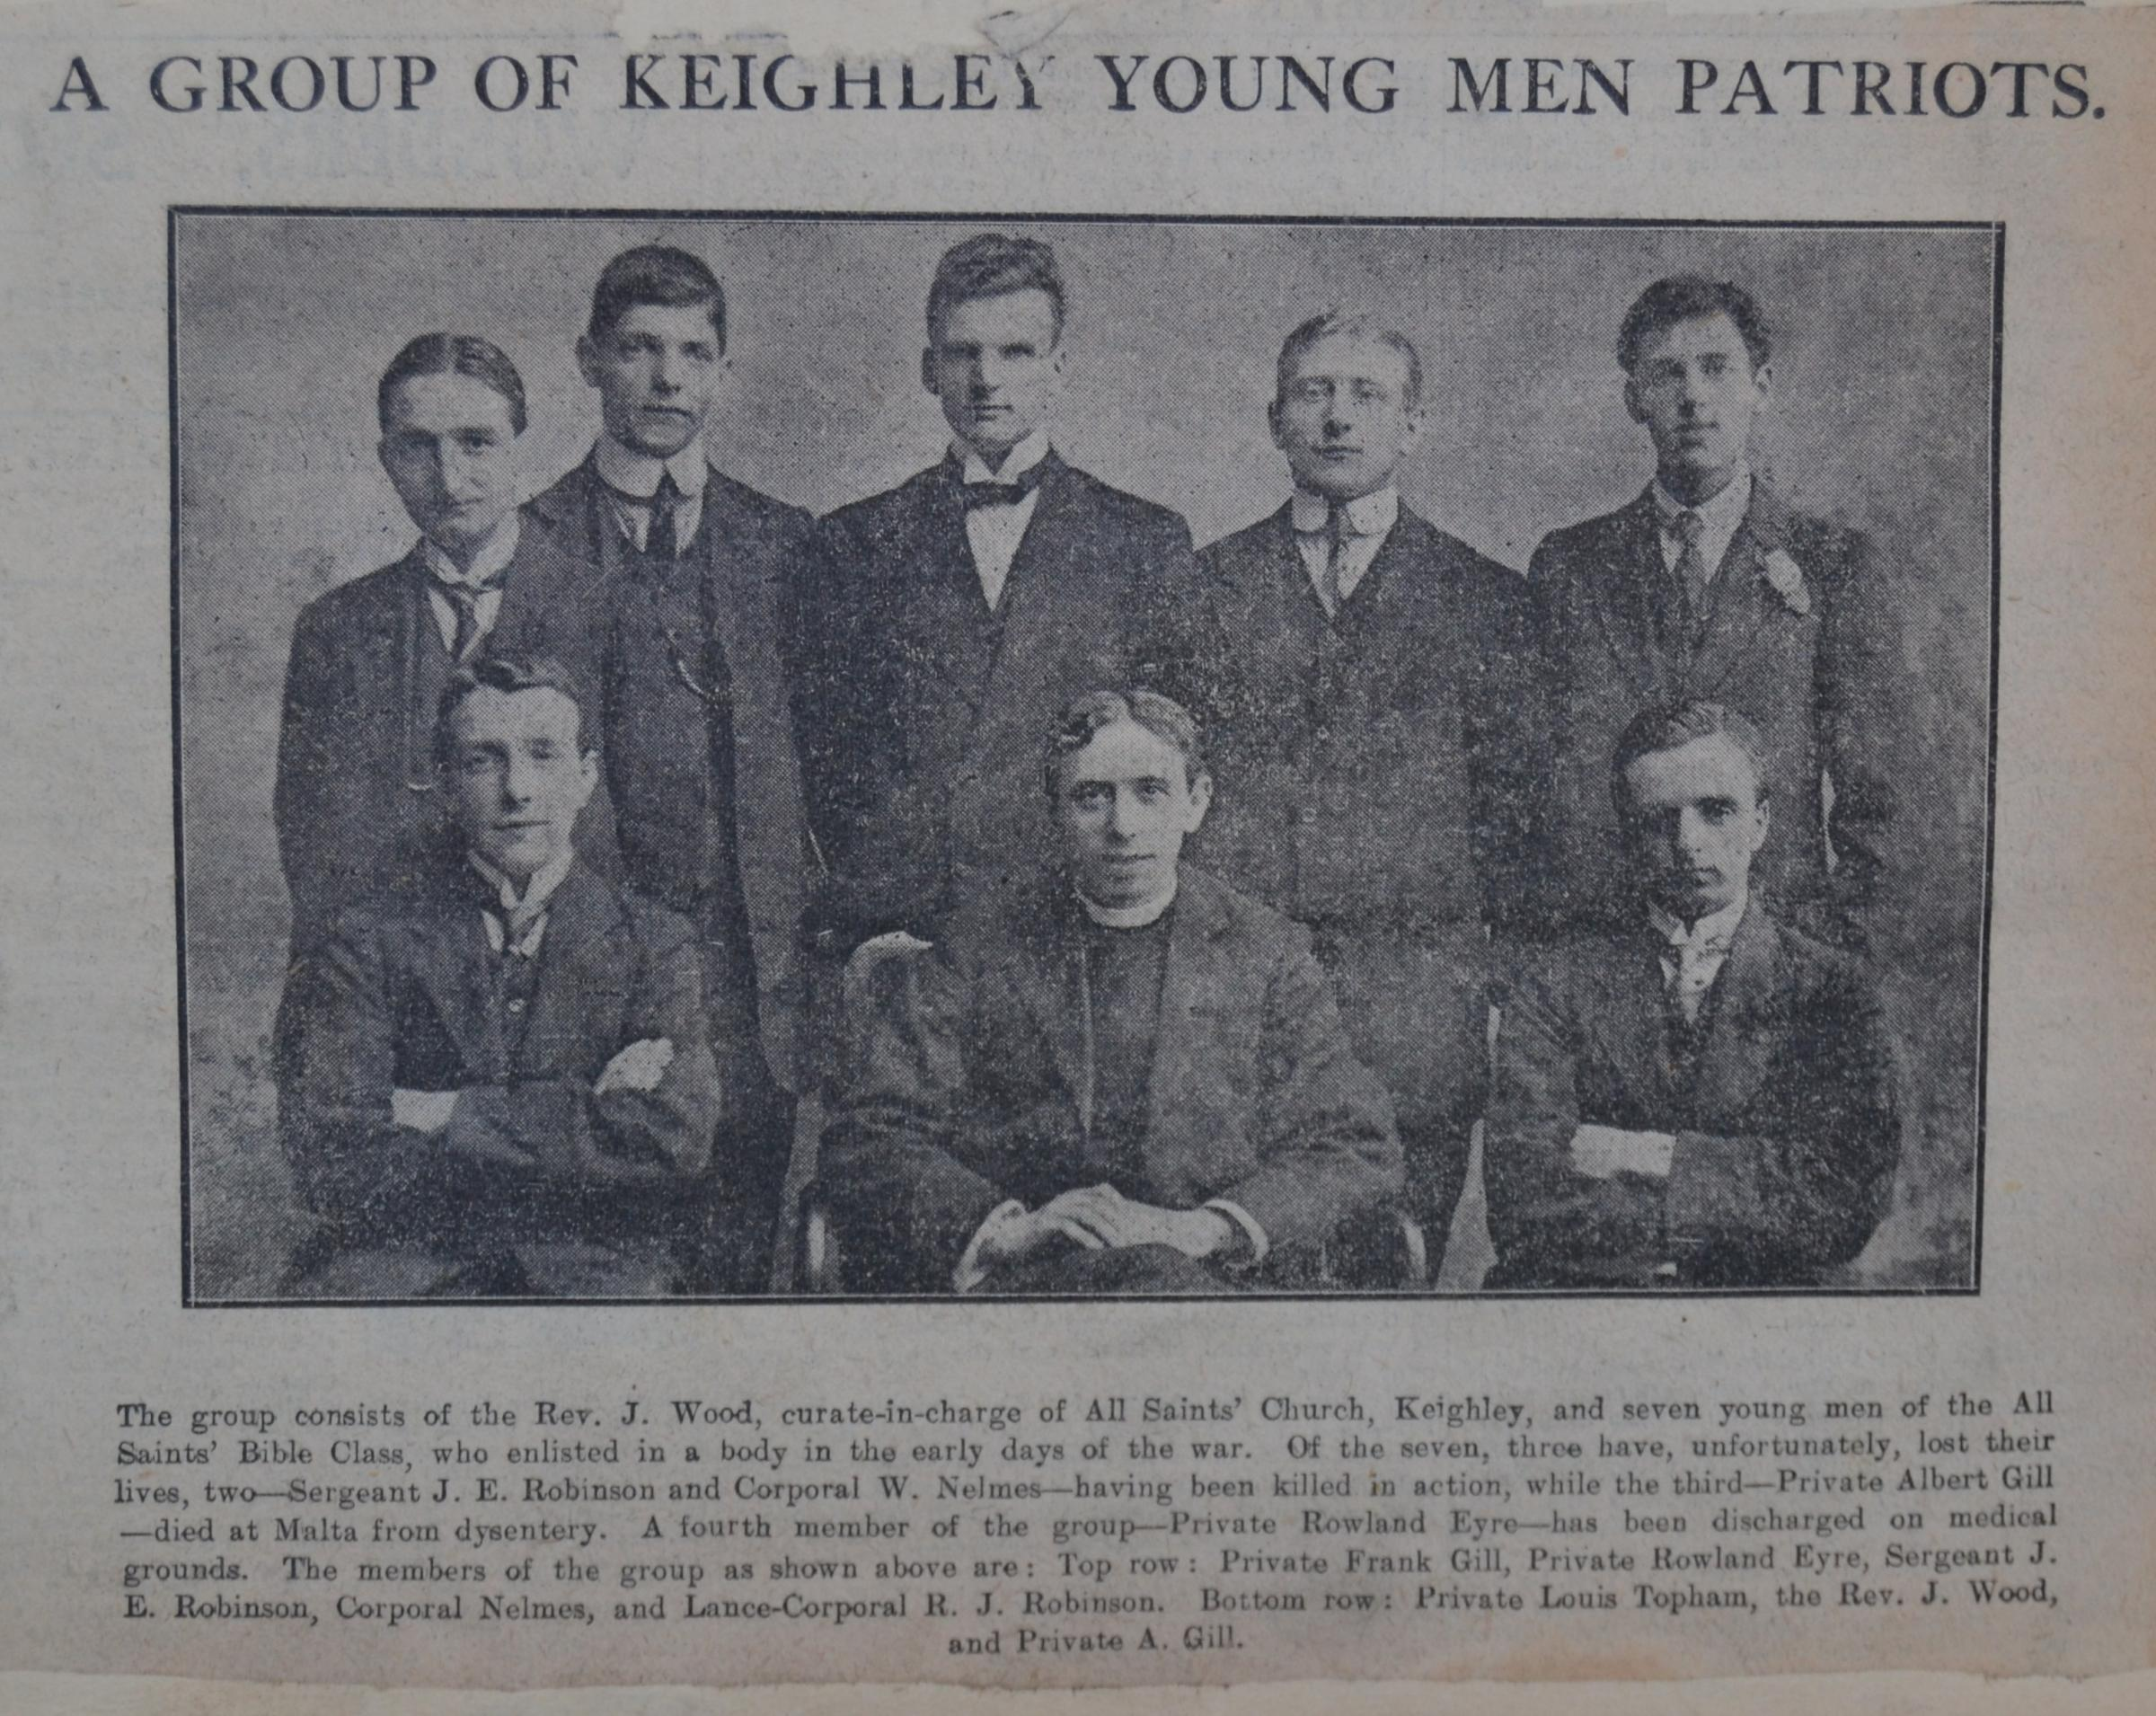 Bible group members from Keighley became Brothers in Arms together